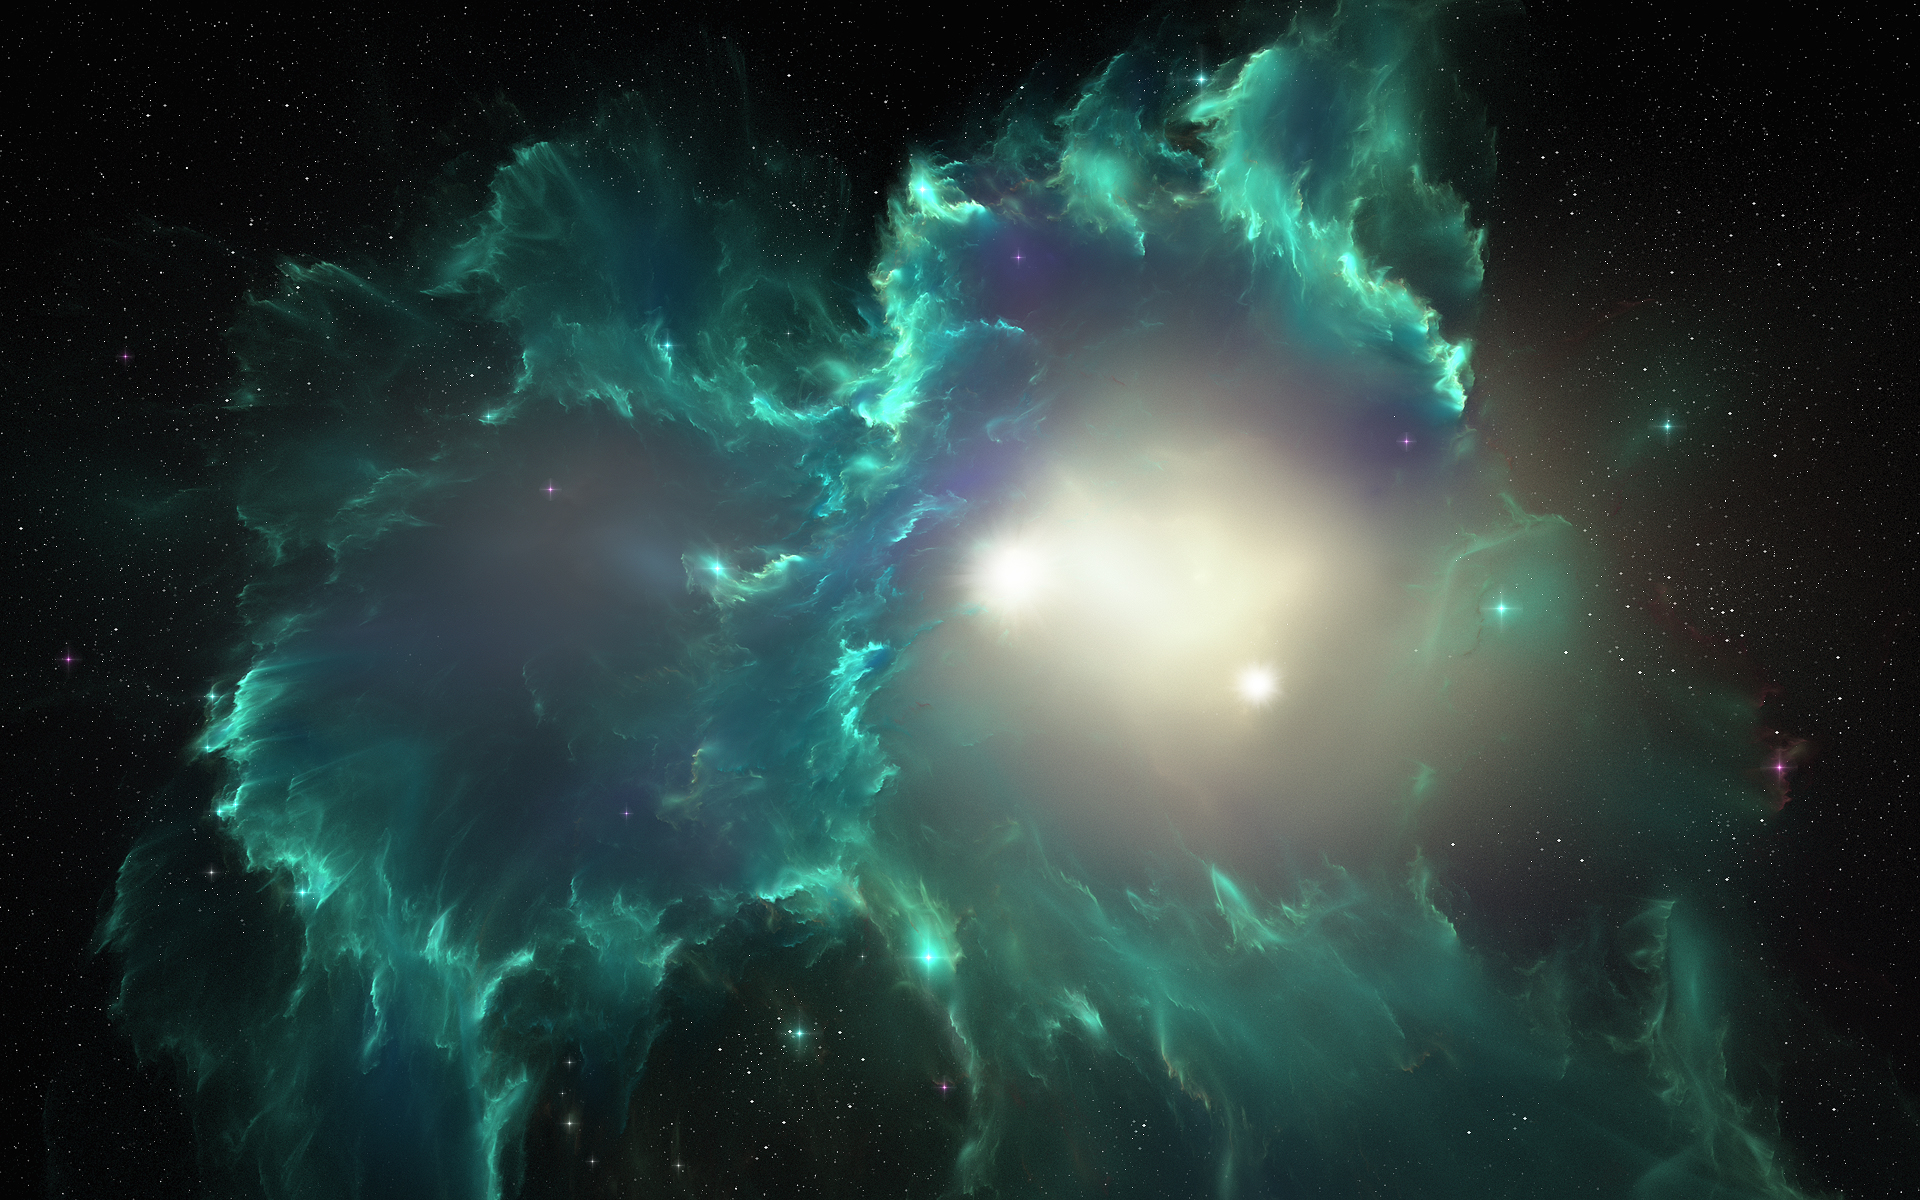 teal space nebula - photo #20